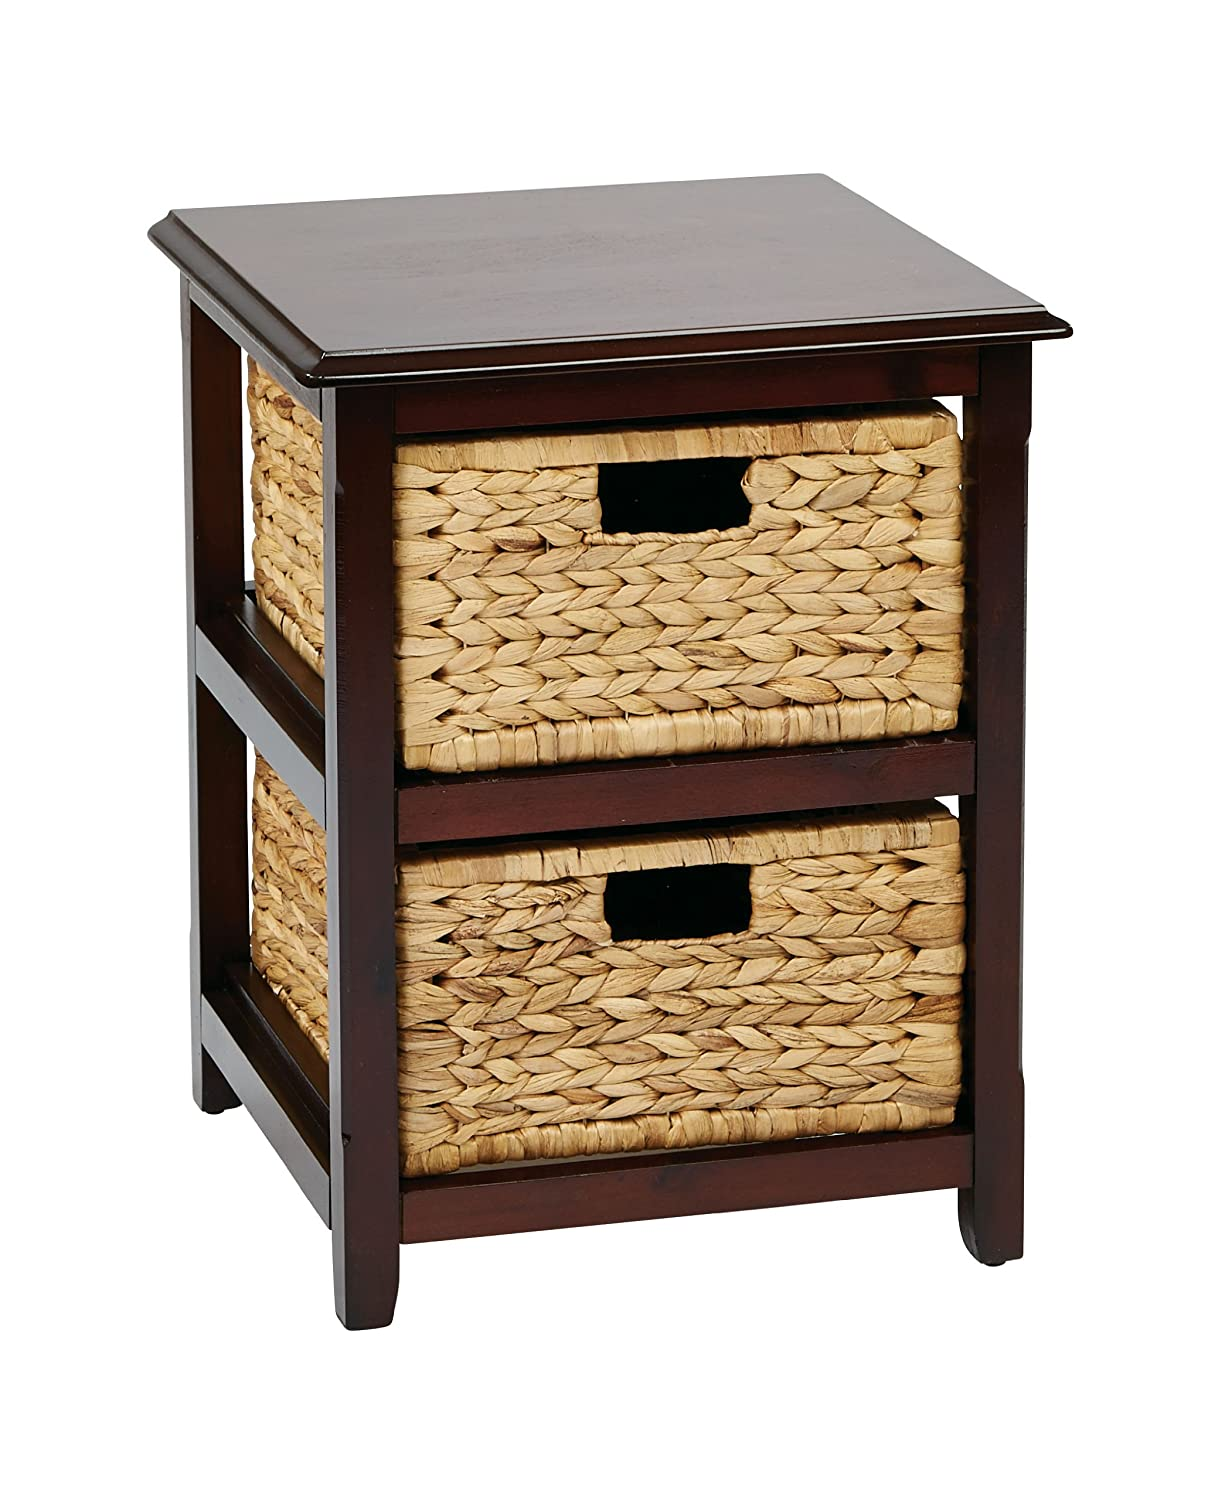 storage unit office. amazoncom office star seabrook 4tier storage unit with natural baskets espresso finish kitchen u0026 dining